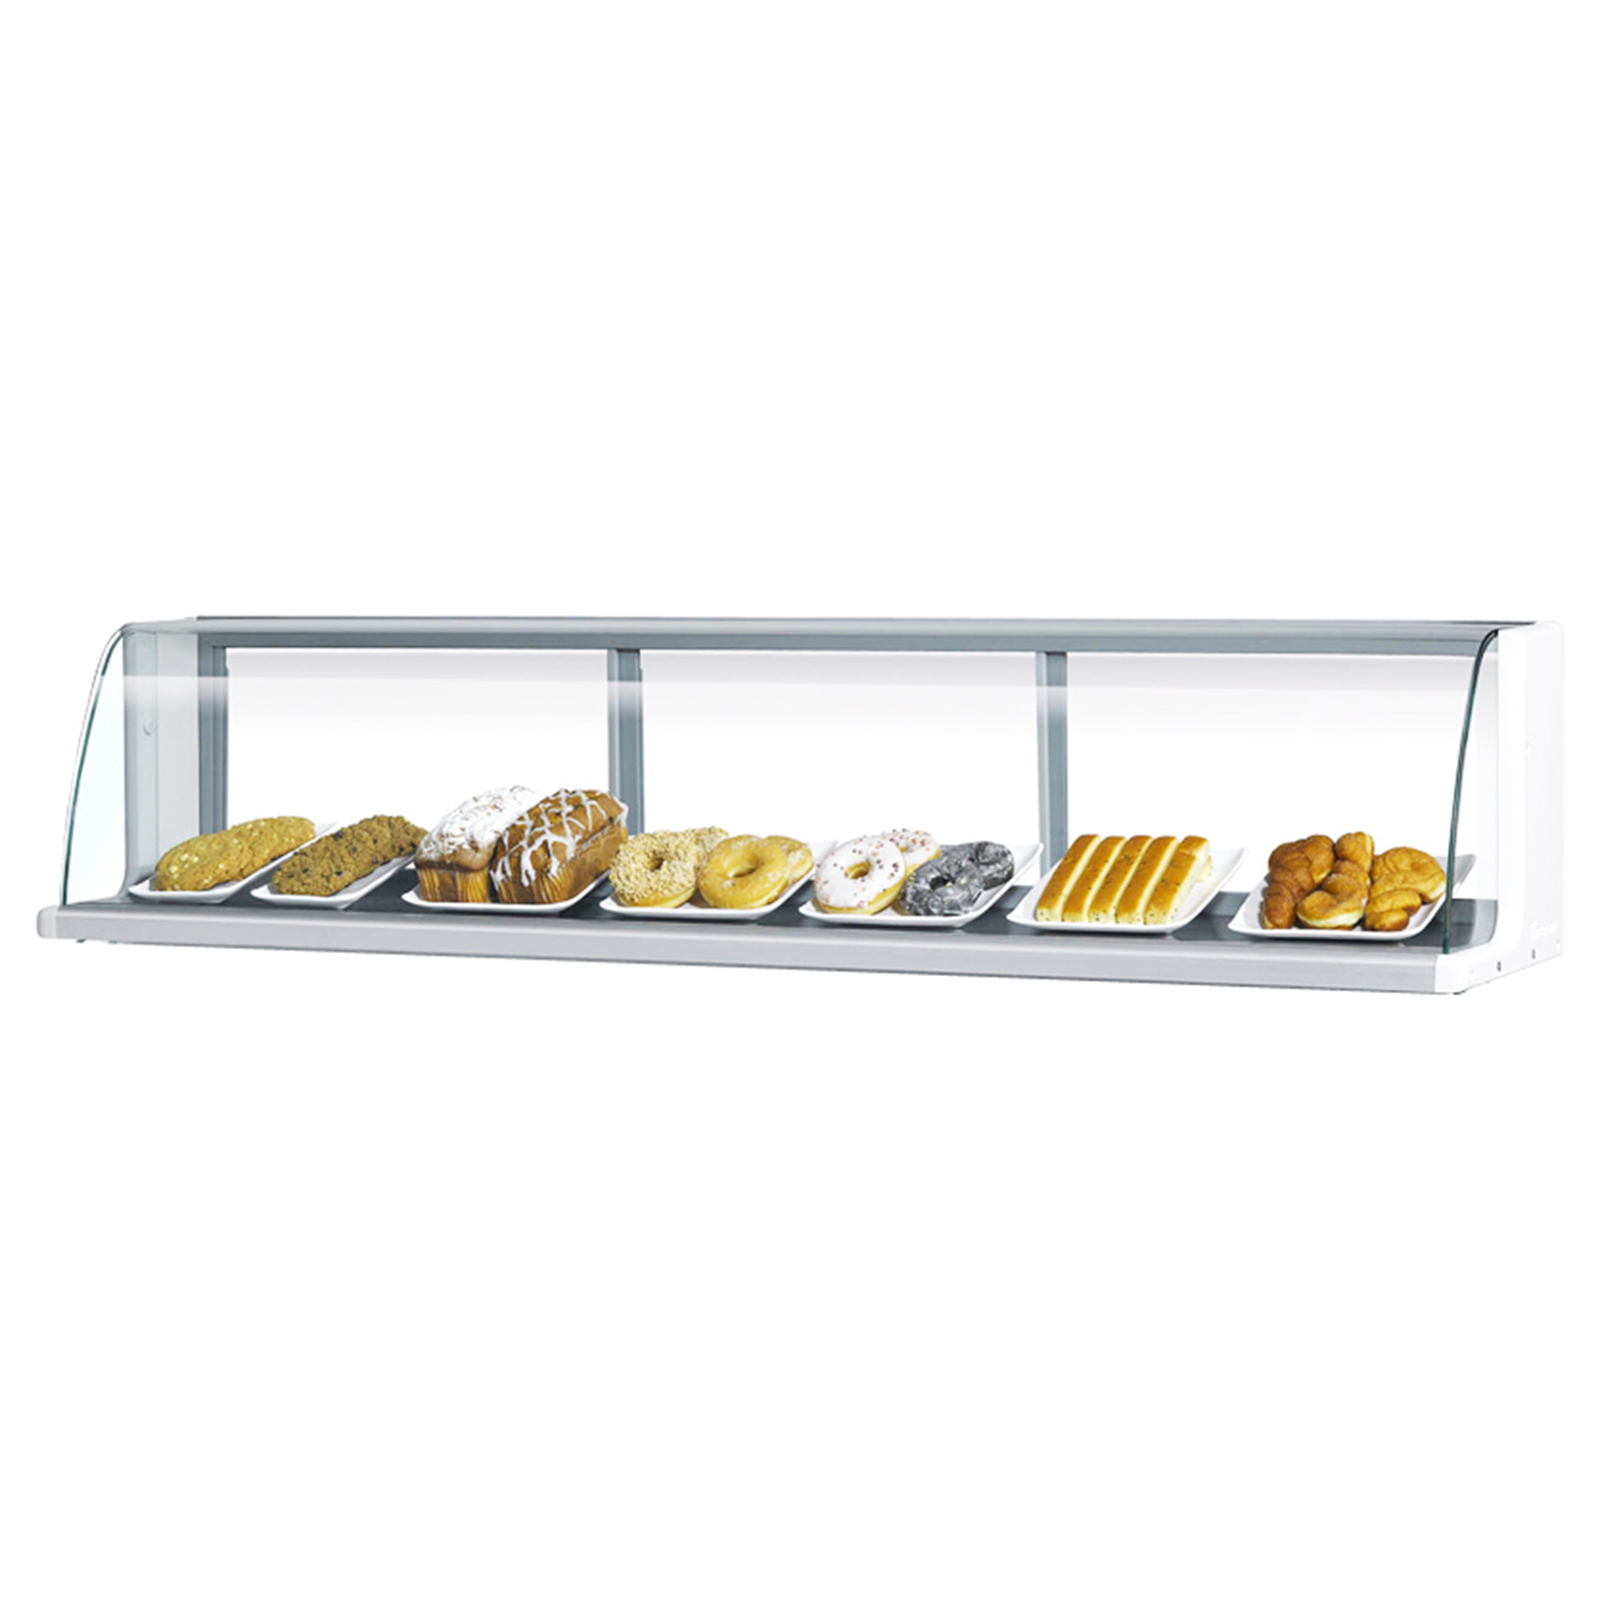 Turbo Air TOMD-30LB display case, non-refrigerated countertop